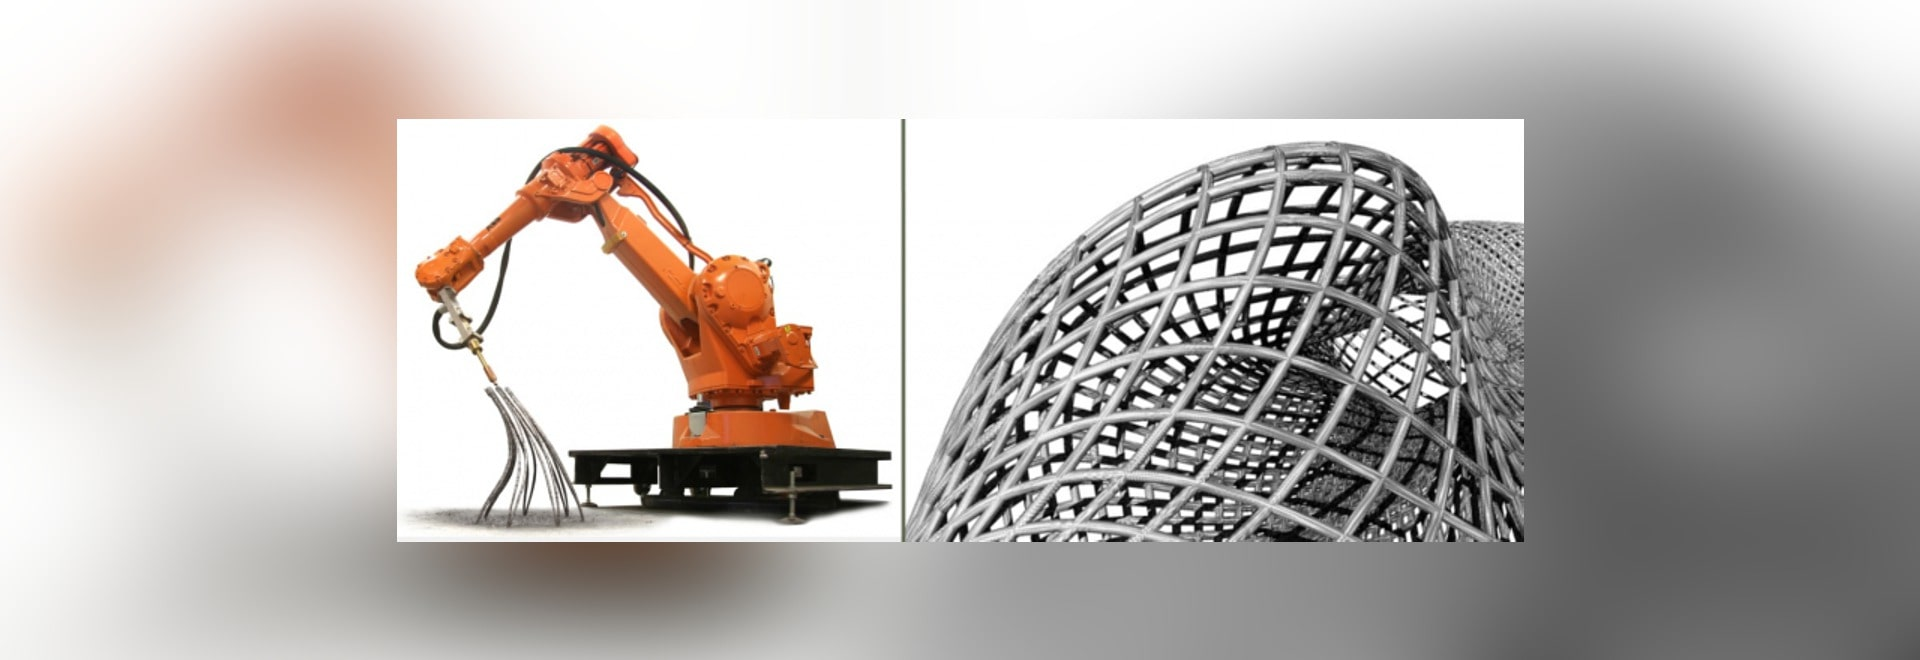 3D PRINTING ROBOTIC ARM CREATES FREESTANDING METAL STRUCTURES